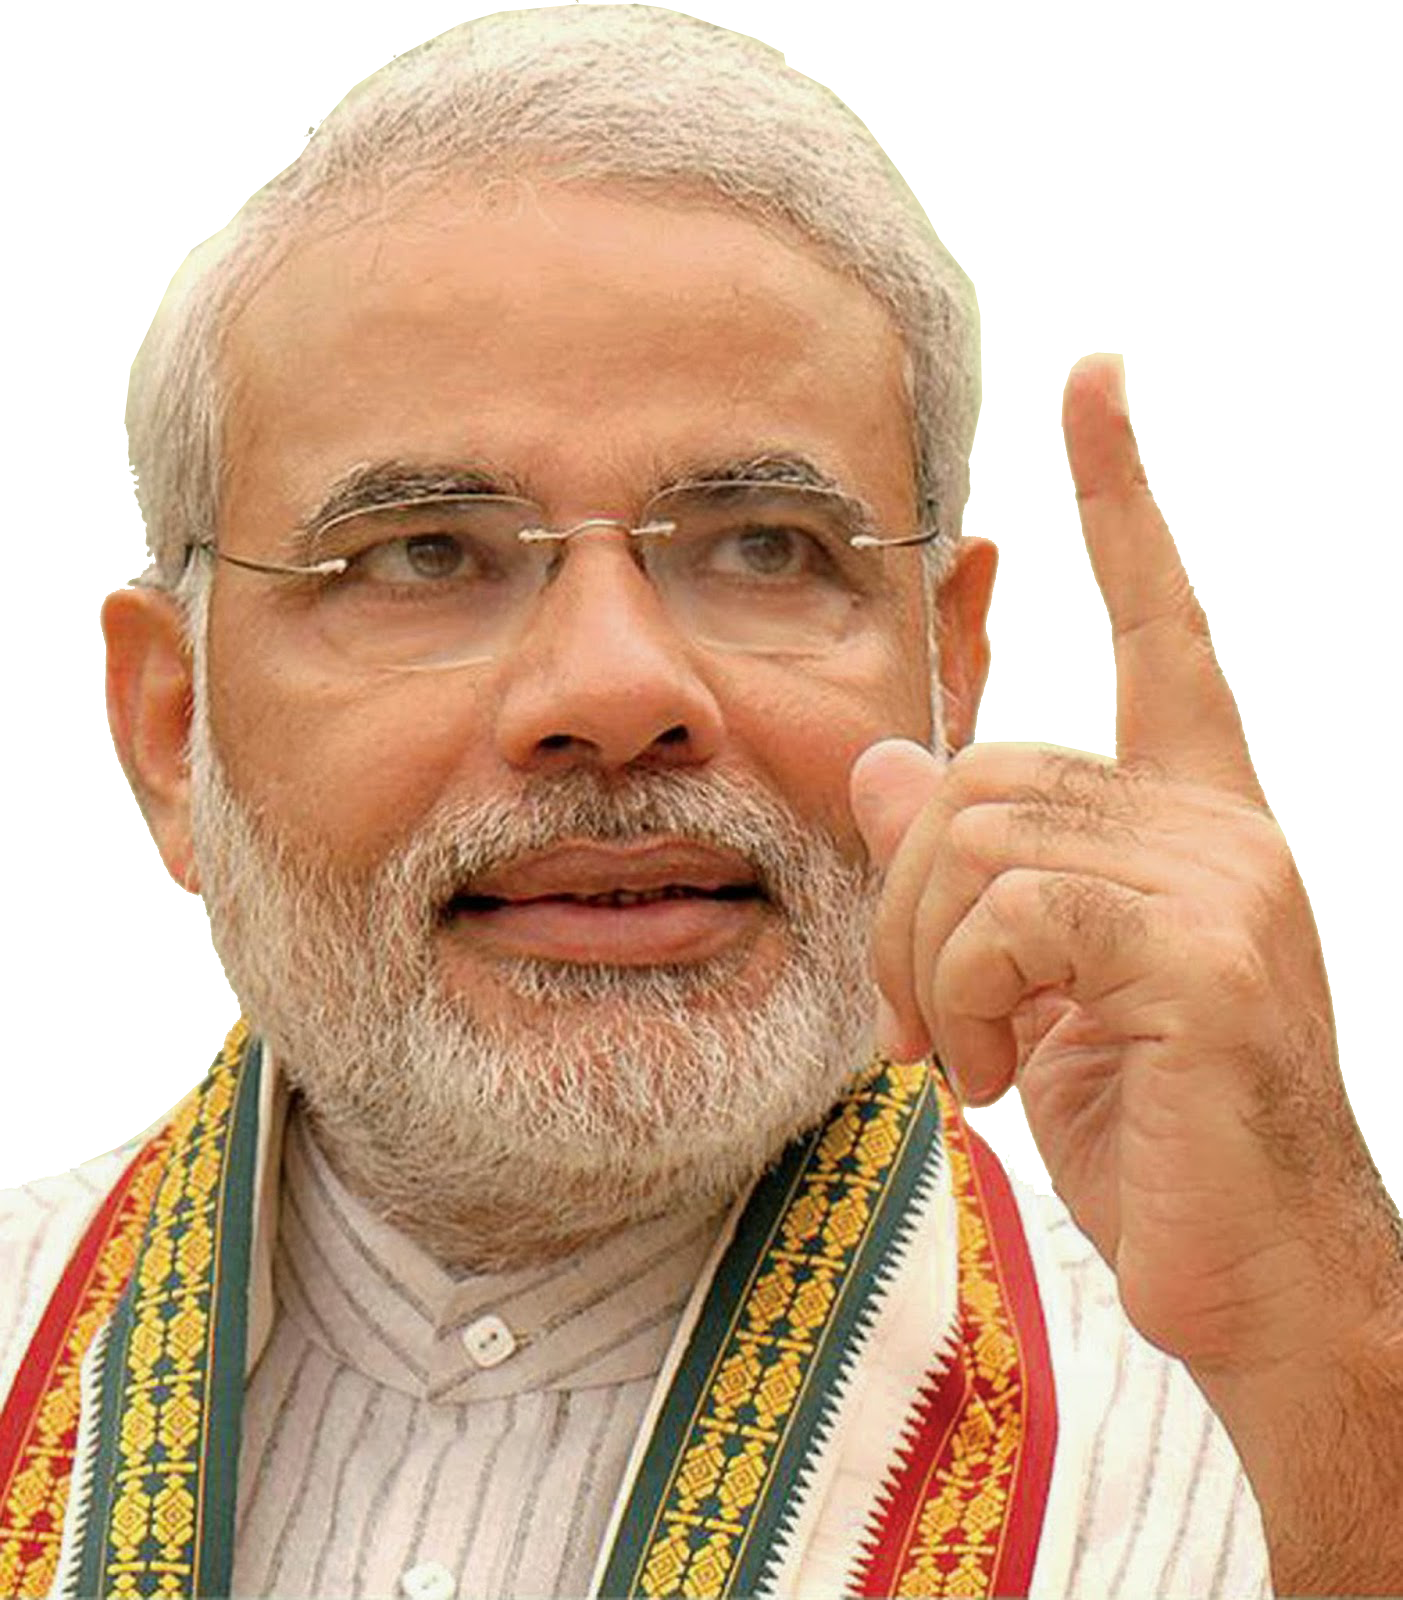 Prime Of India Narendra Chief Video Minister PNG Image